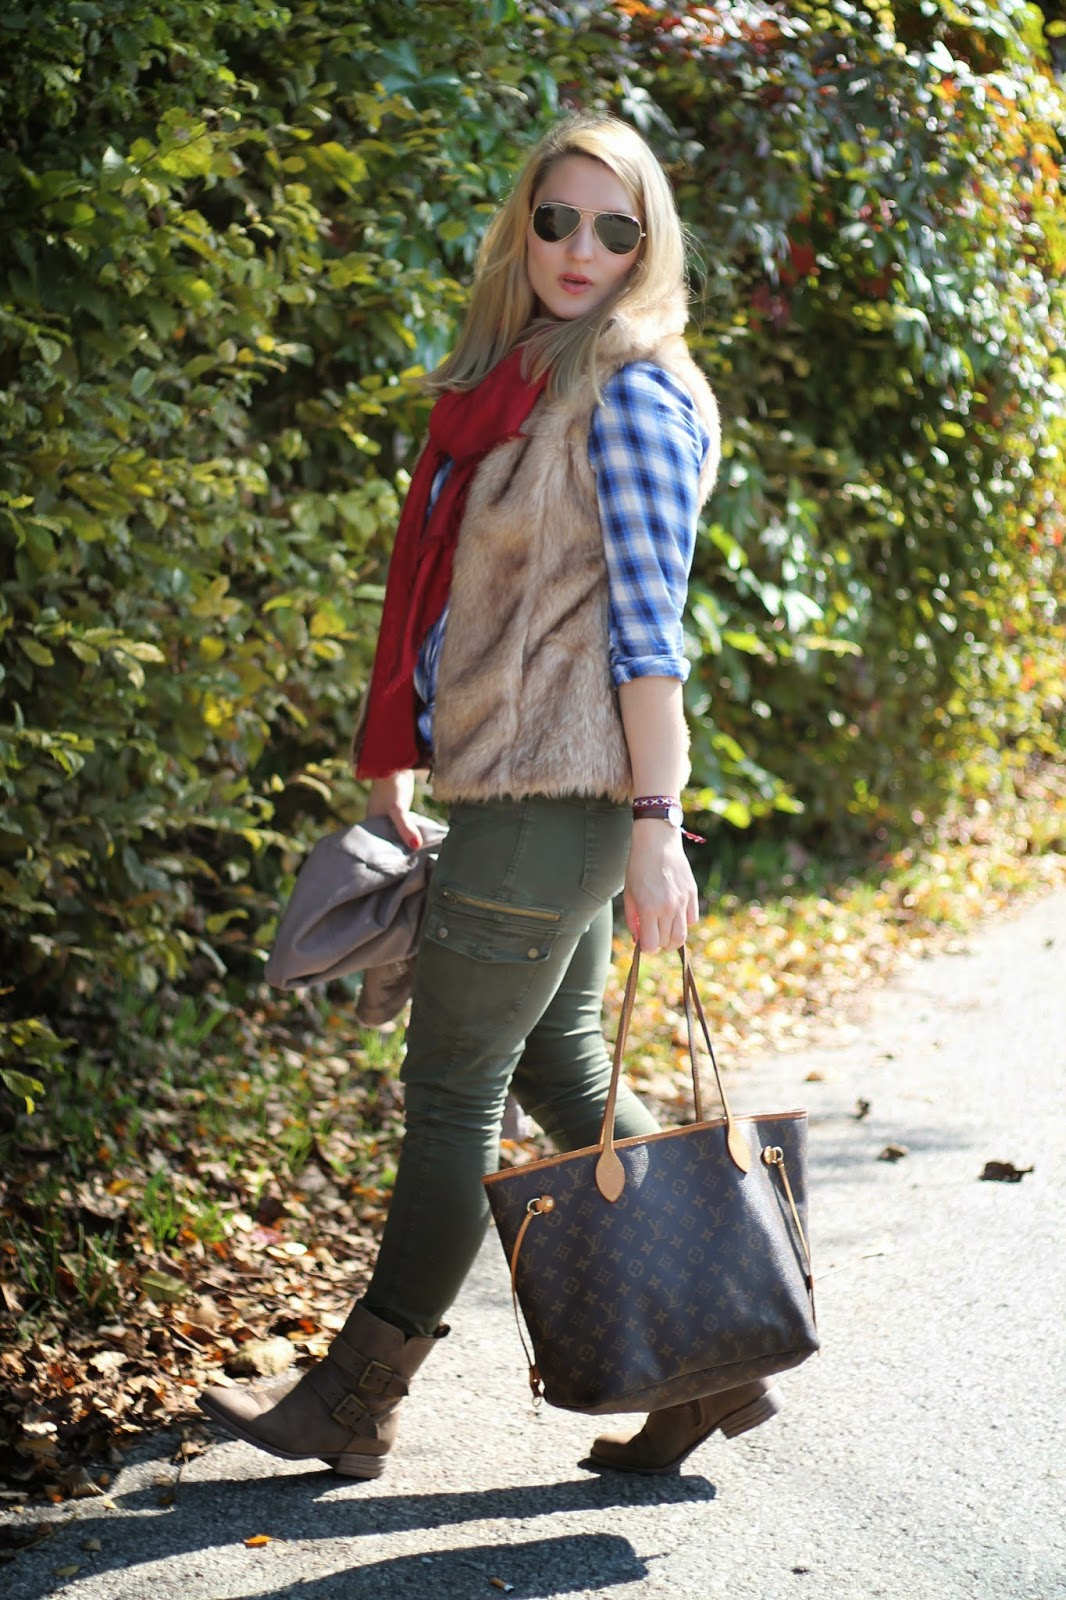 Fashionblogger Austria / Österreich / Deutsch / German / Kärnten / Carinthia / Klagenfurt / Köttmannsdorf / Spring Look / Classy / Edgy / Autumn / Autumn Style 2014 / Autumn Look / Fashionista Look / Louis Vuitton / Neverfull Monogramm MM / Scarf / Brown Blouse Holzfällerhemd Pimkie / Fellweste Fake Fur Vest Zara Kids / Ernsting's Family Boots Autumn Winter 2014 / Takko Leather Vest Taupe / Zara Oliv Mility Pats / Ray Ban Aviator Sunglasses Pilot/